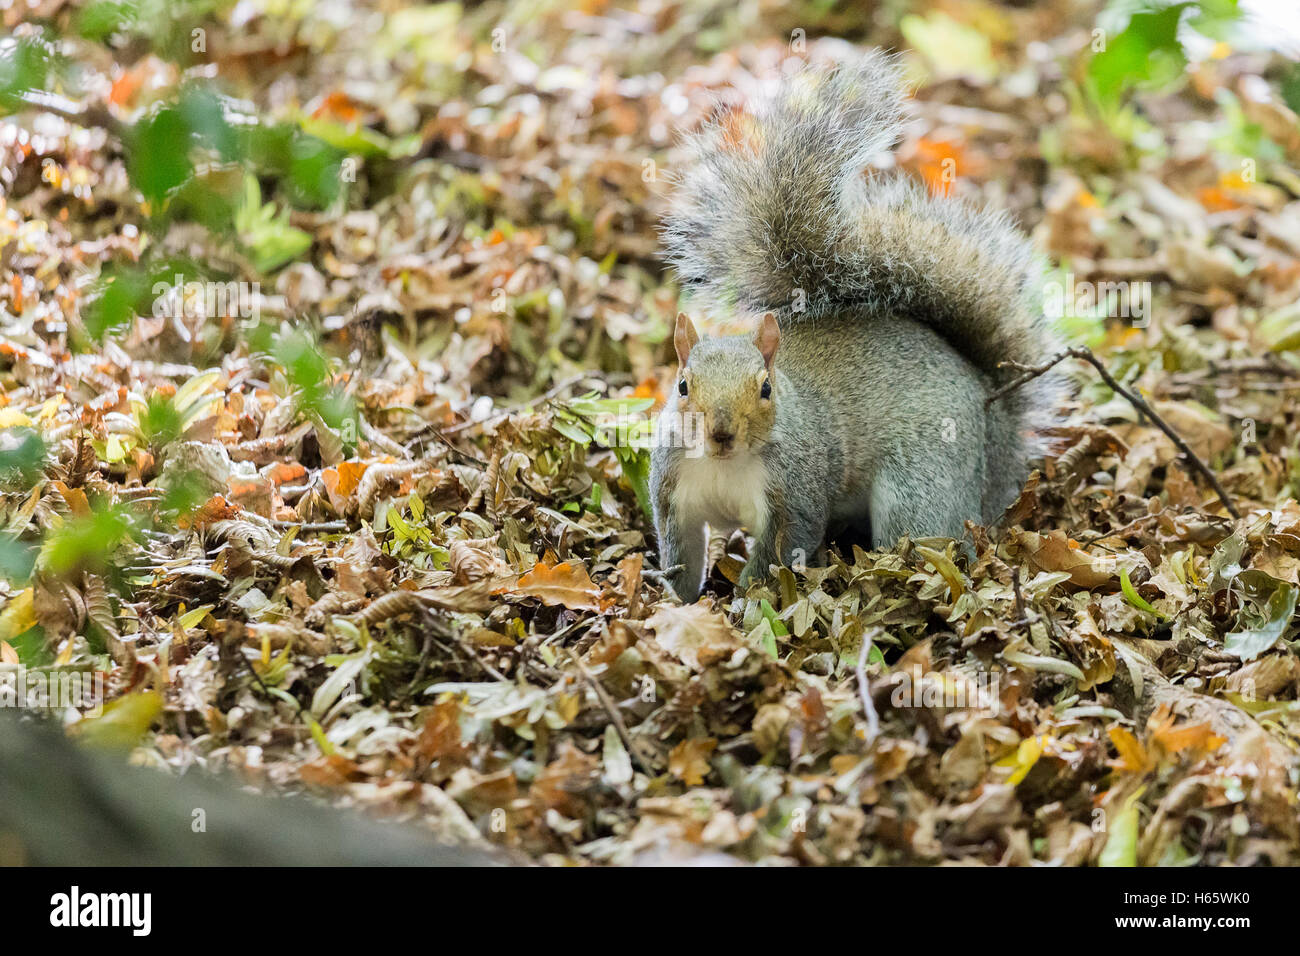 A grey/gray squirrel in a autumn park looks at the camera. - Stock Image